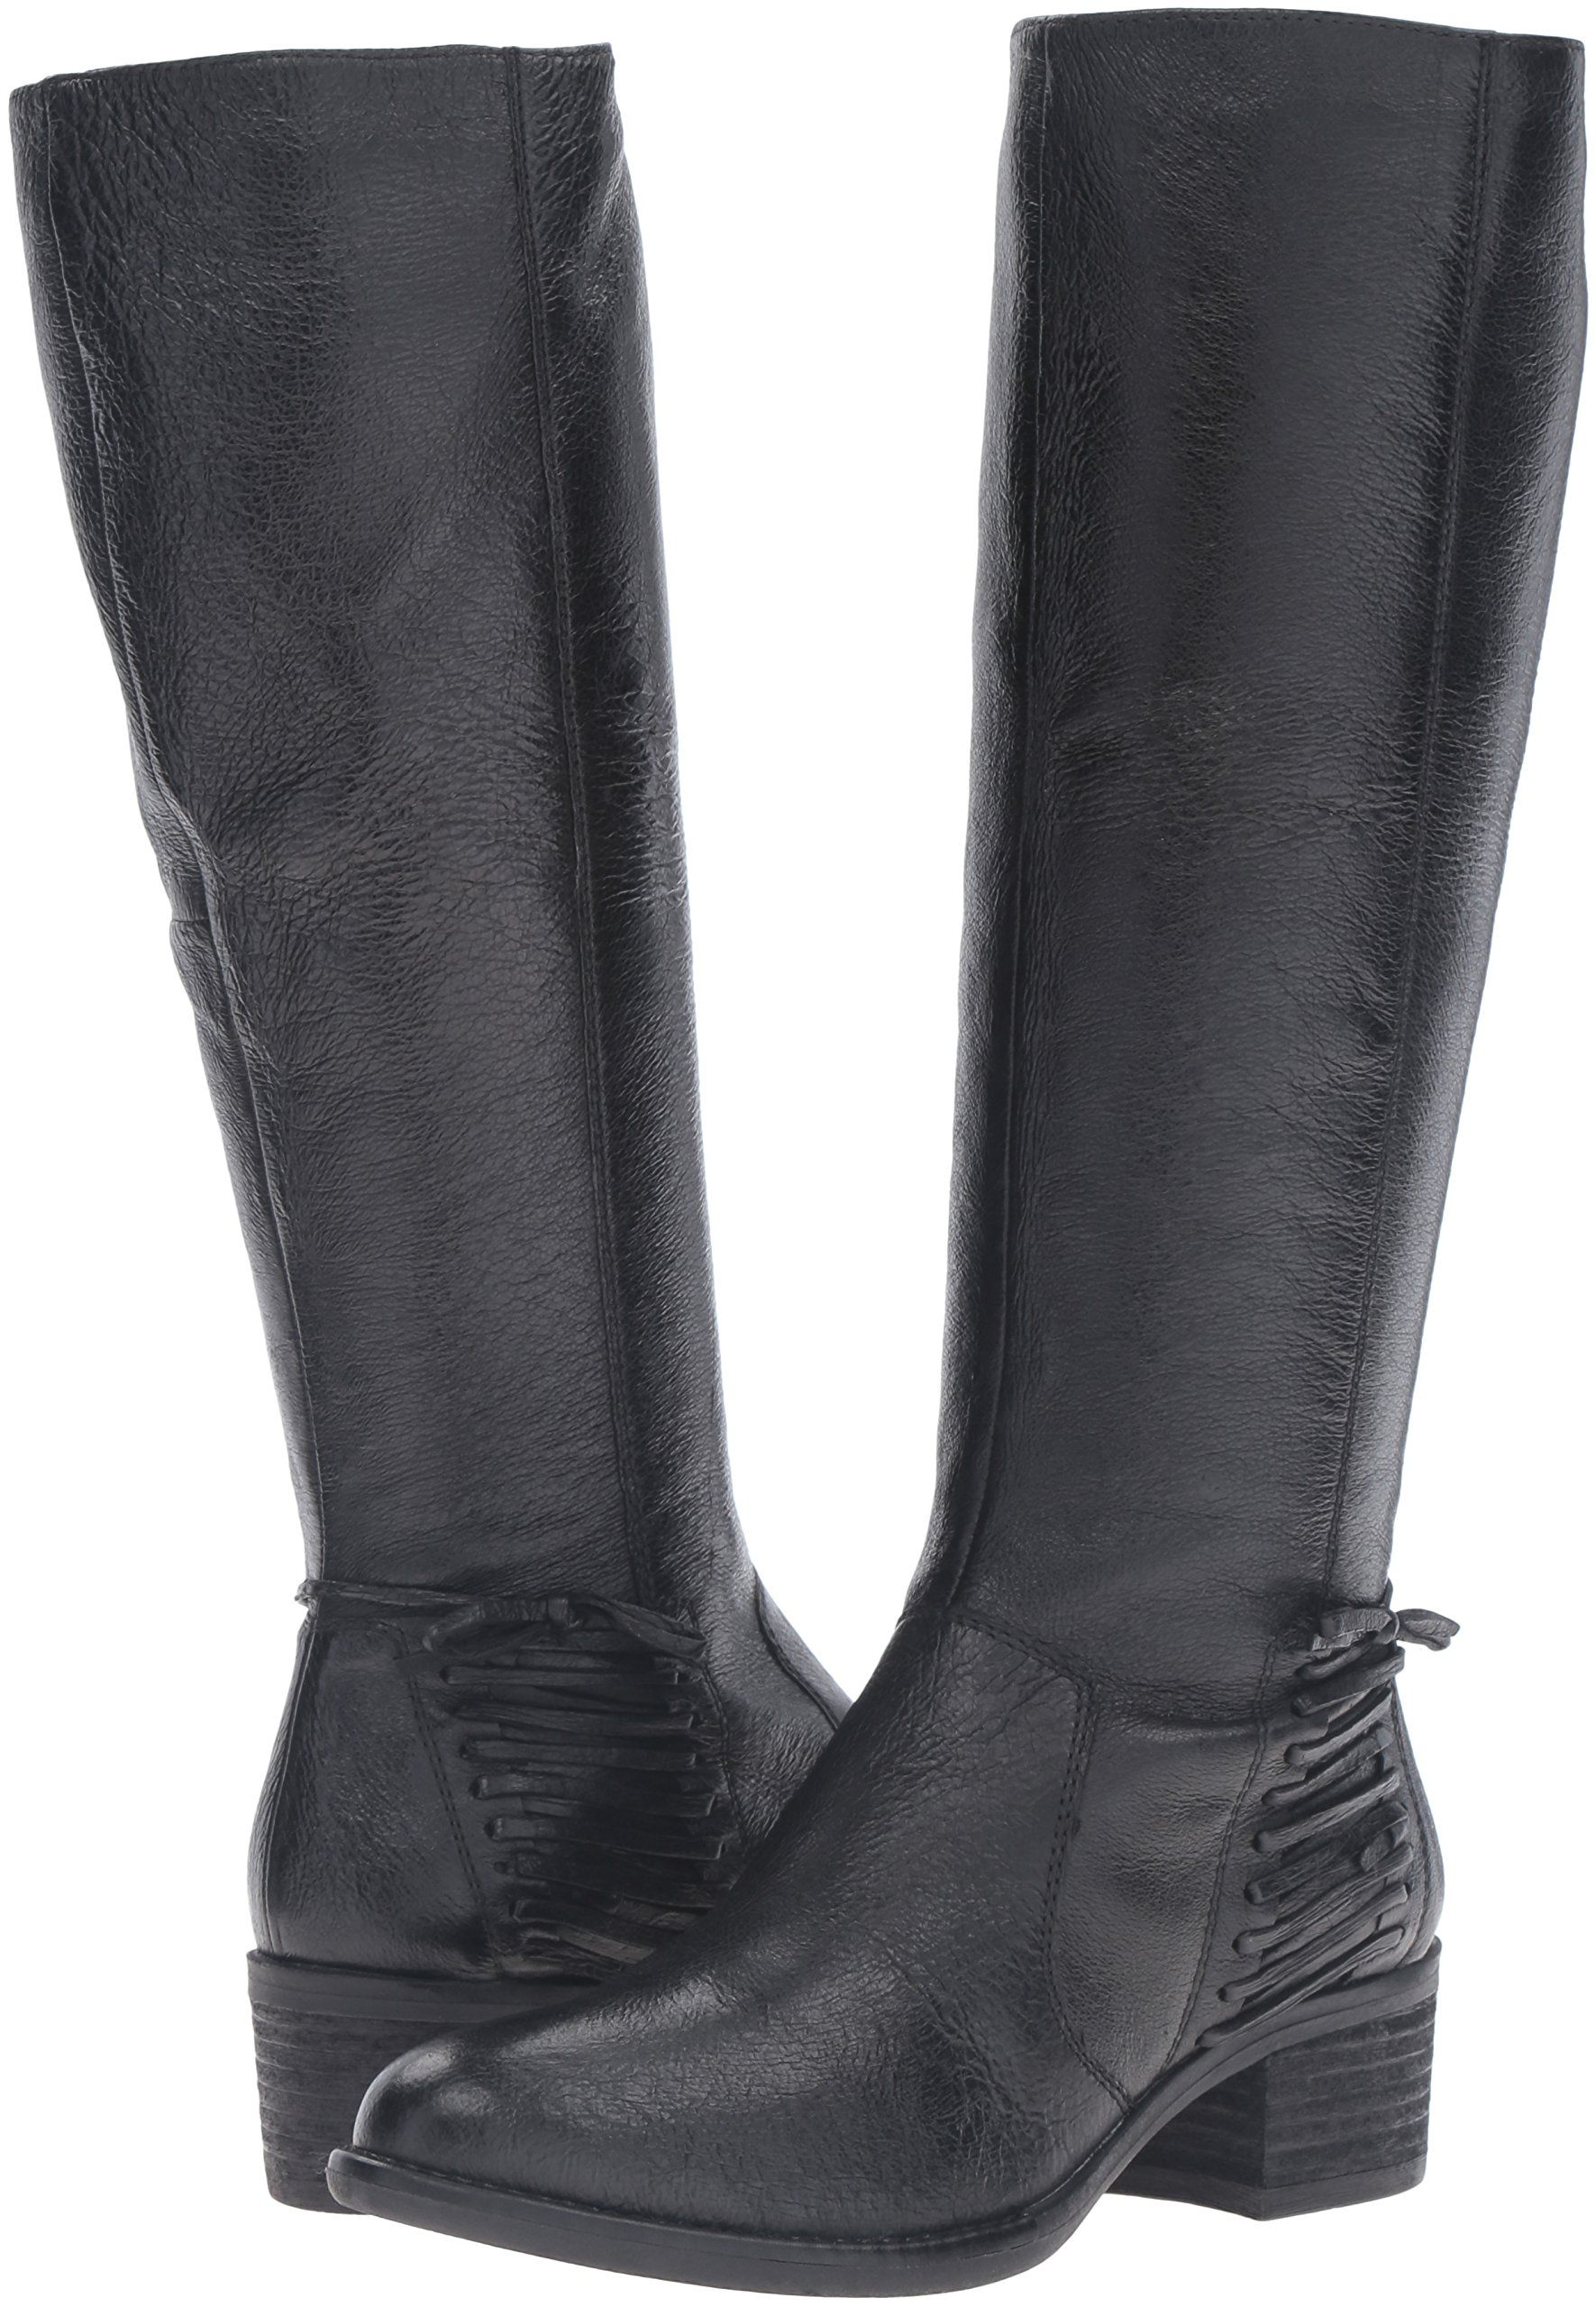 e8d1aace1b2 Steve Madden Womens Lonnny Riding Boot Black Leather 6.5 M US     Click  image